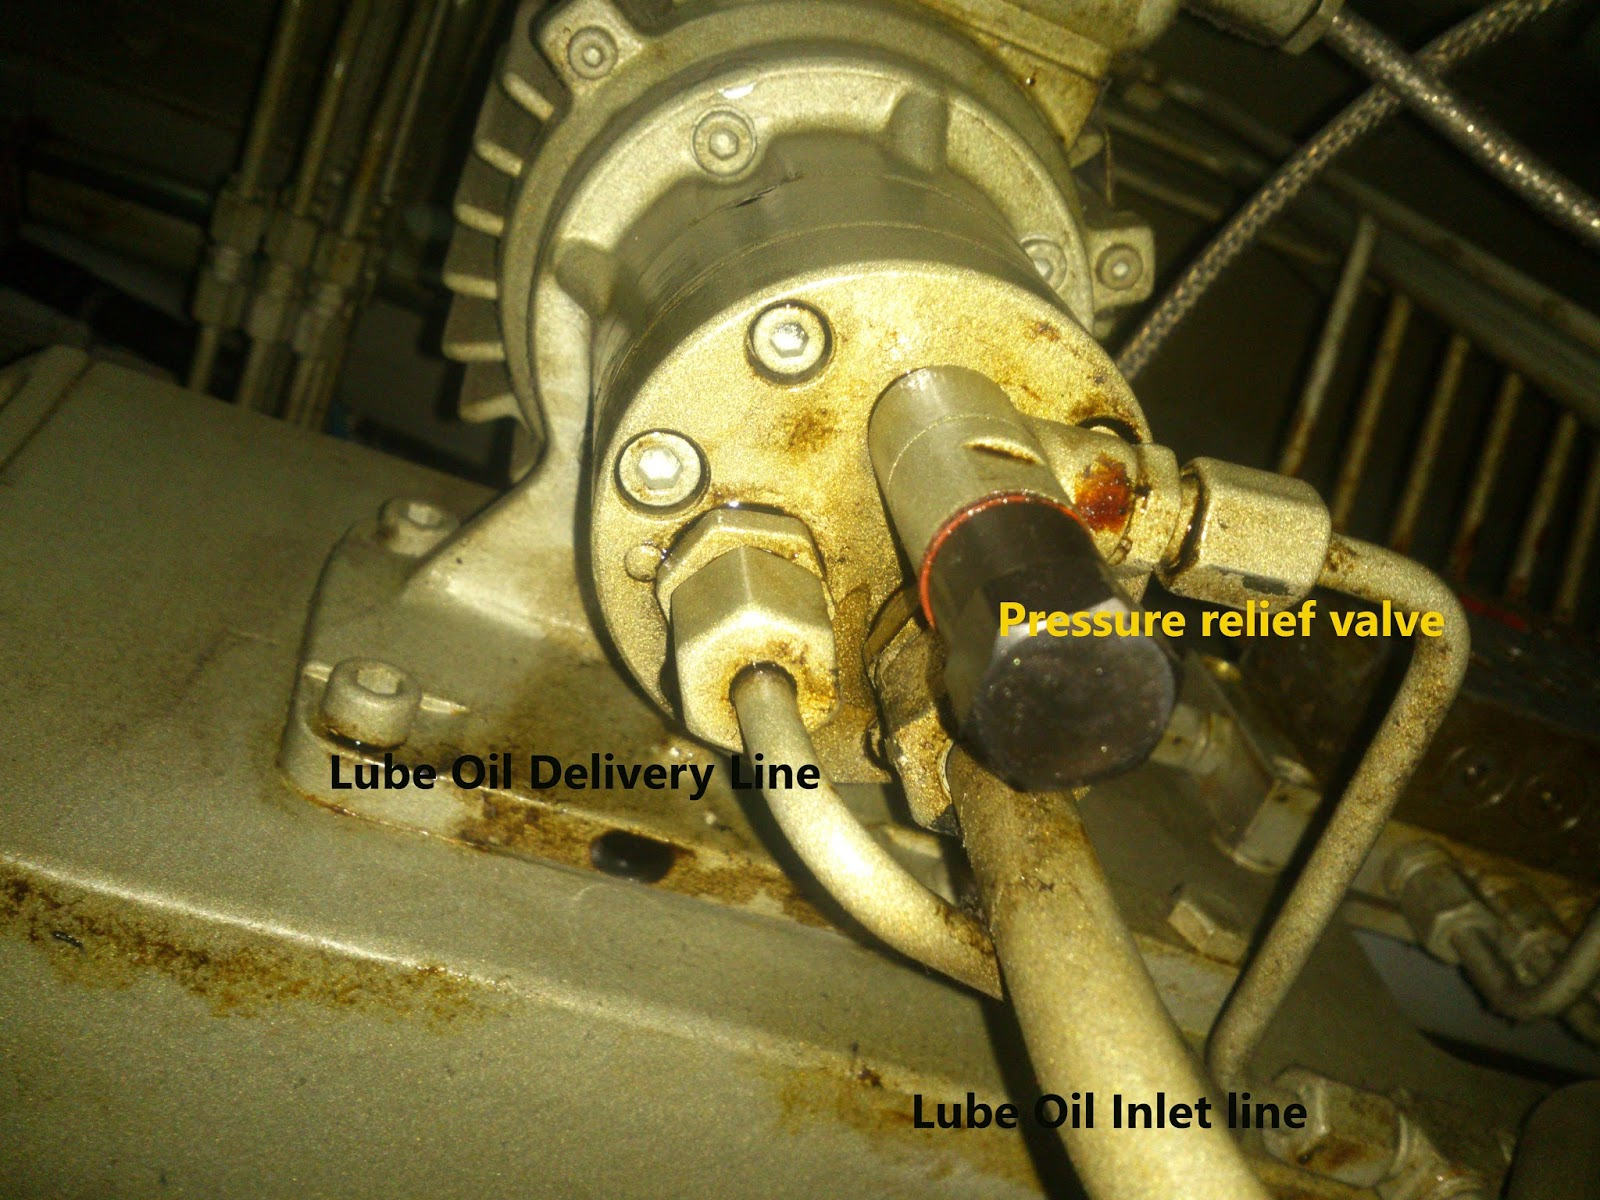 cylinder lubrication pump with pipe connections